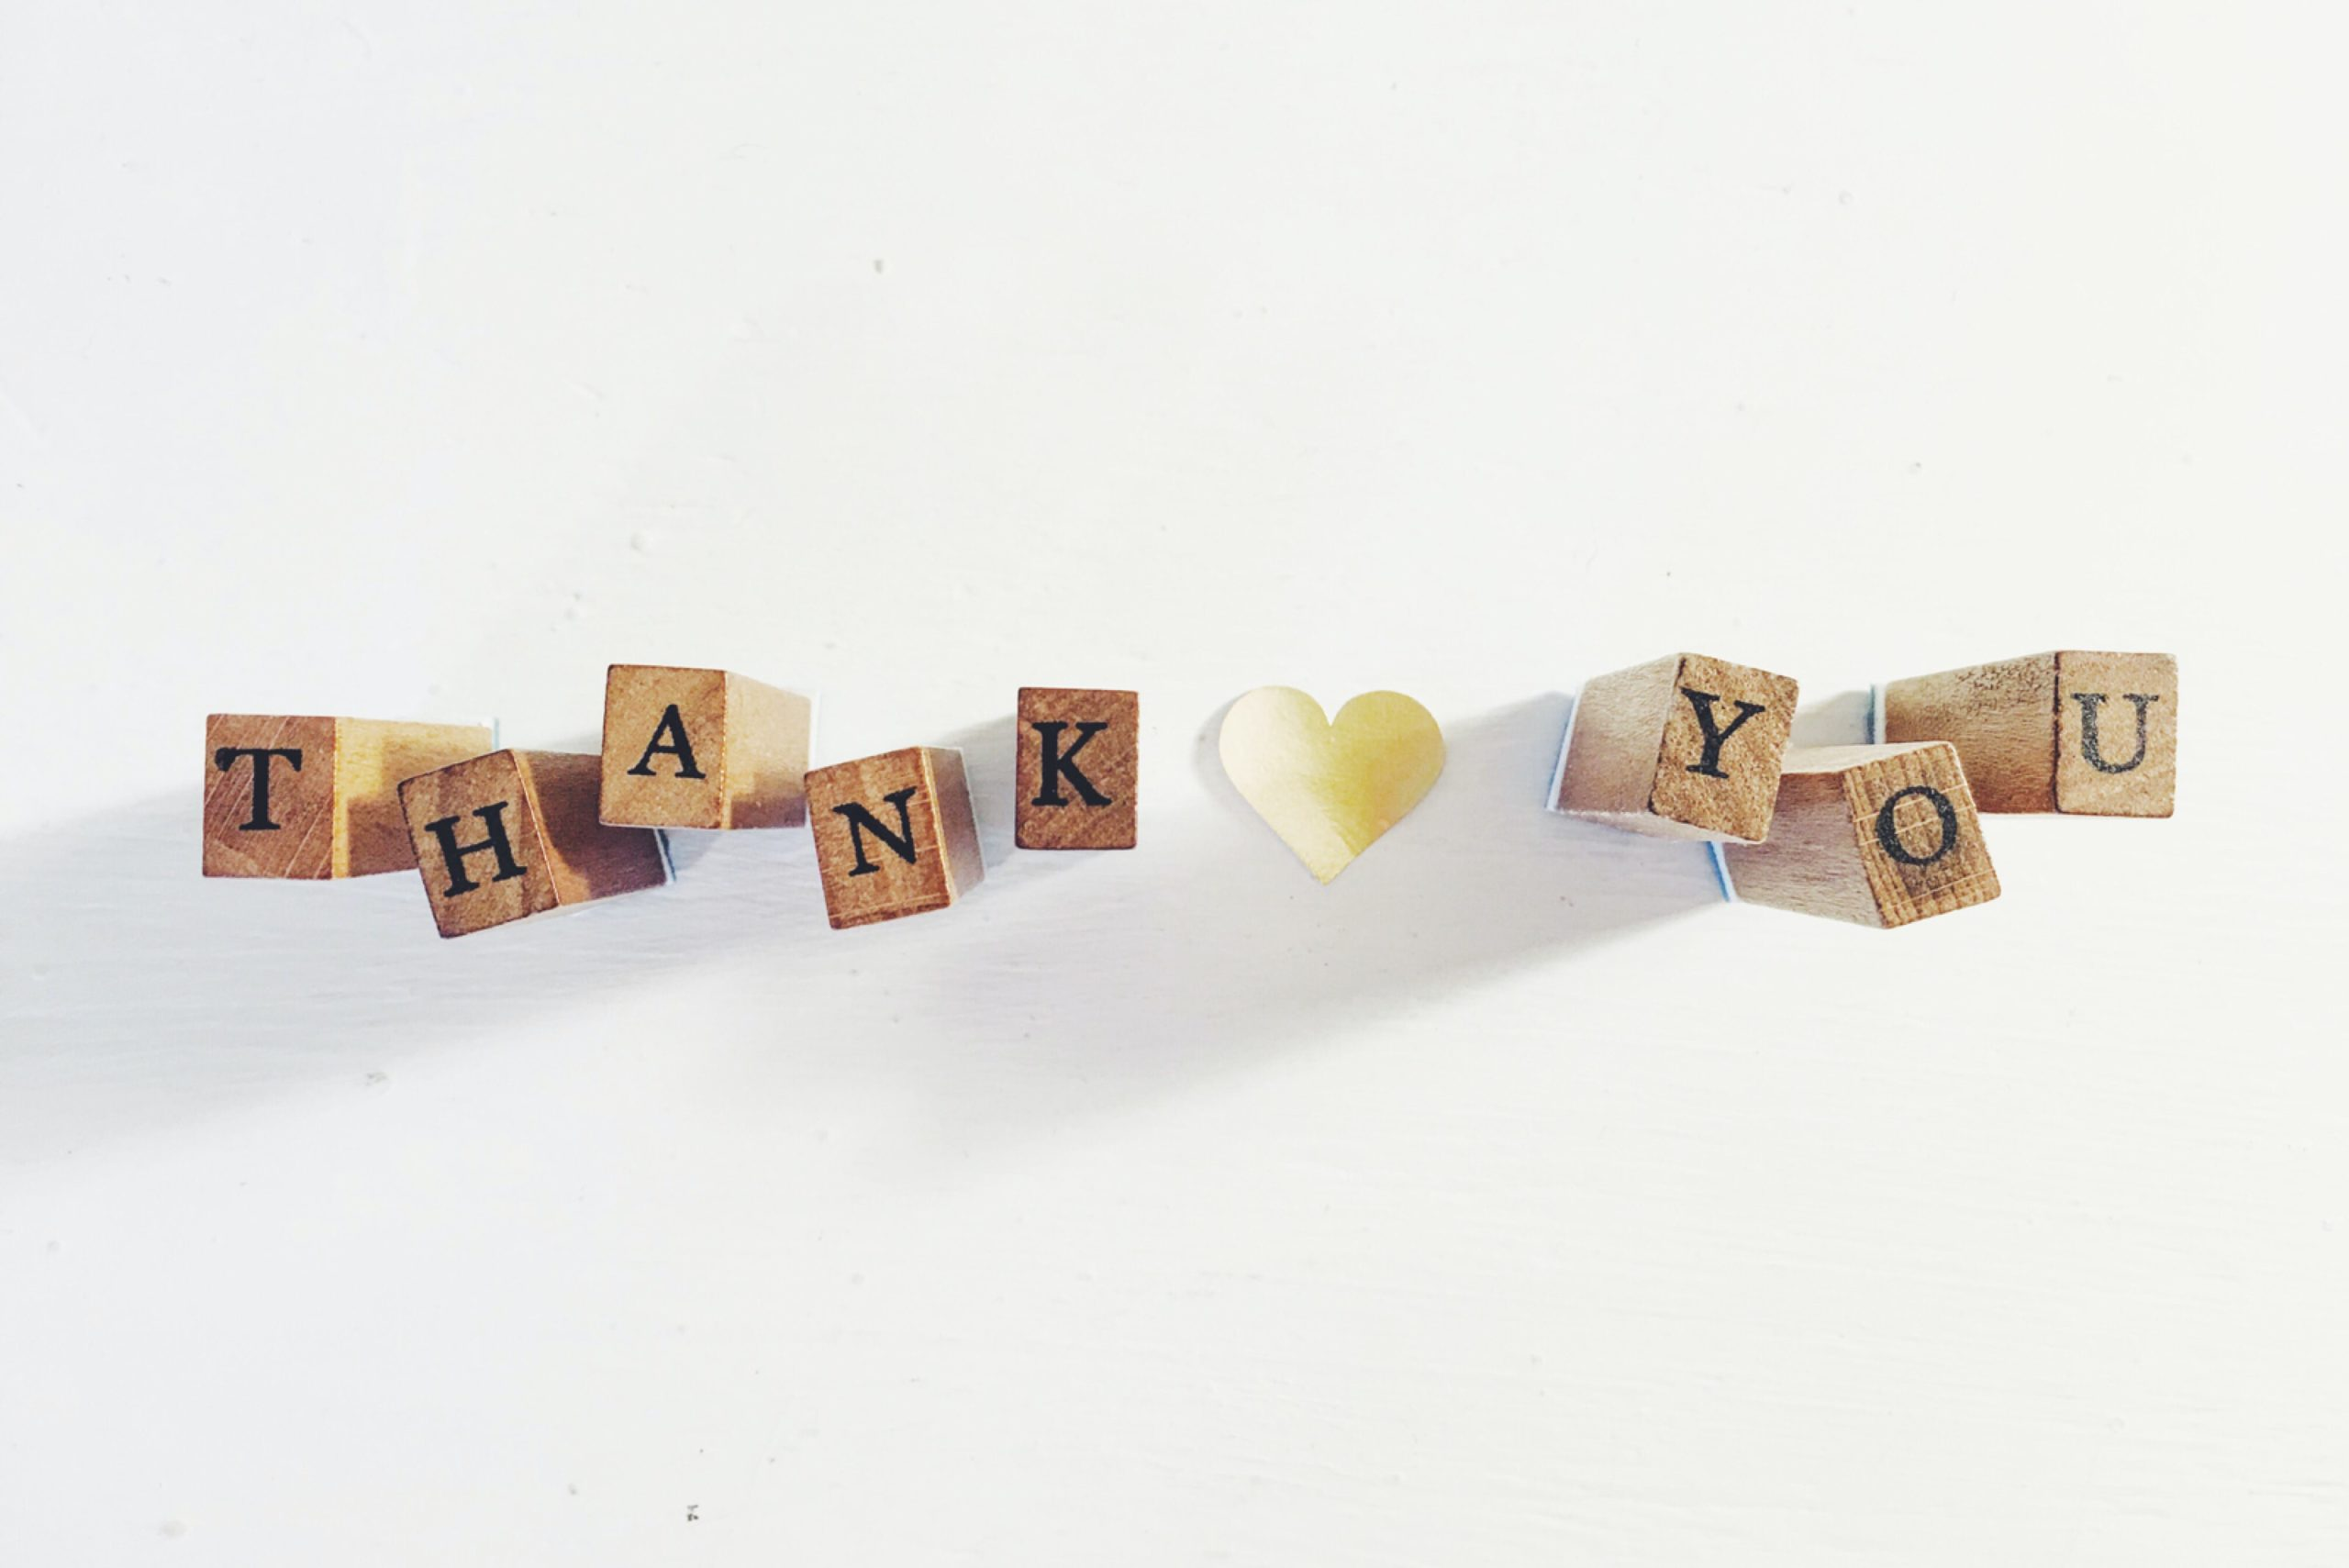 Blocks that spell out 'Thank You' with a heart in the middle